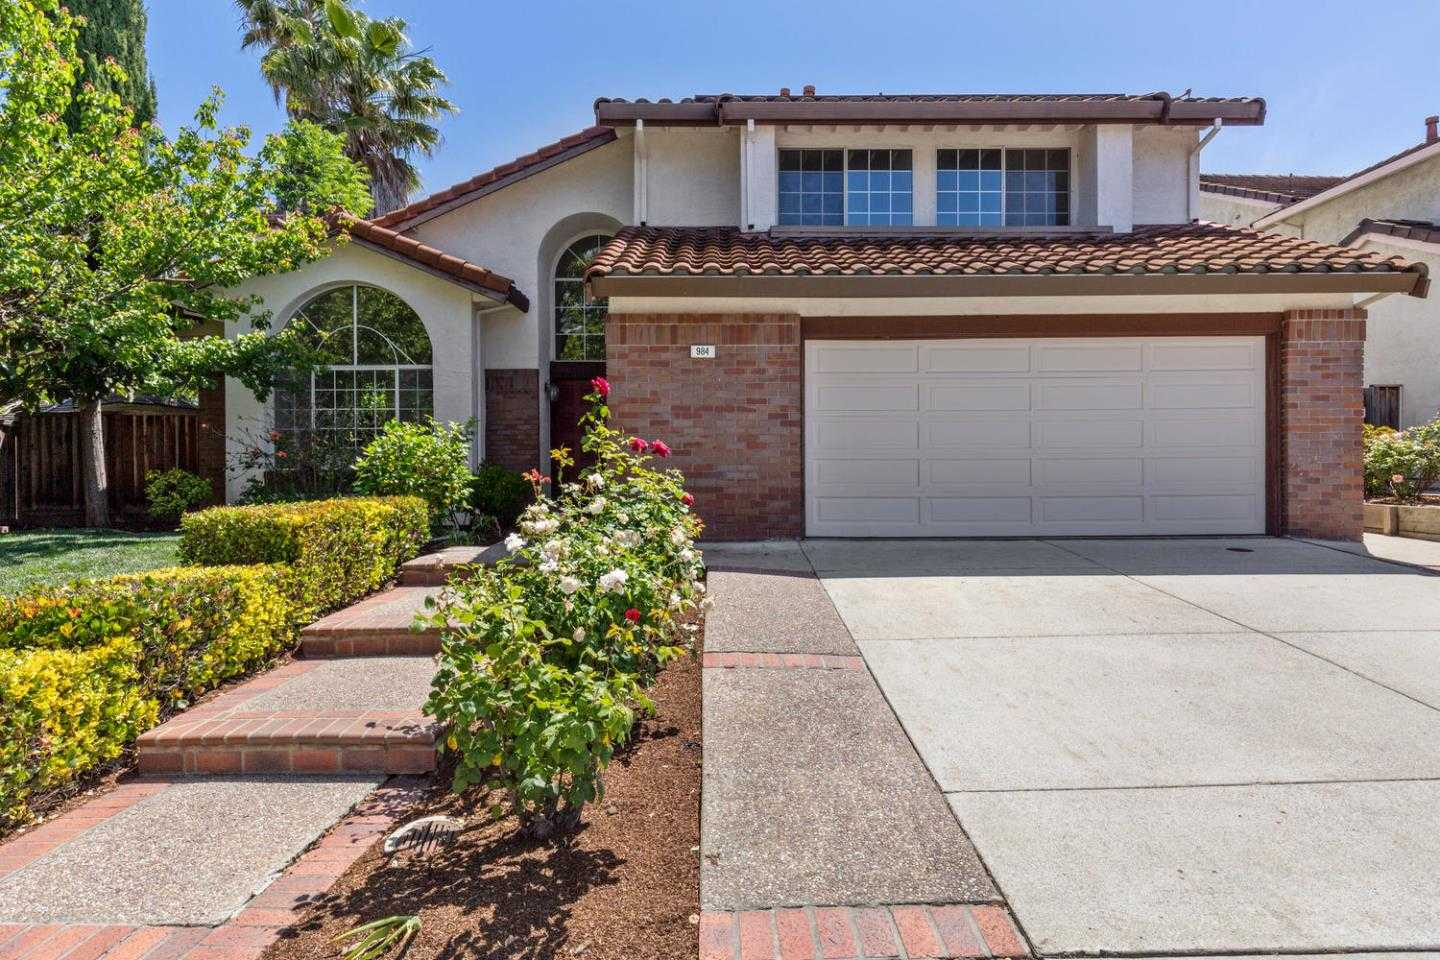 $1,750,000 - 4Br/3Ba -  for Sale in Milpitas